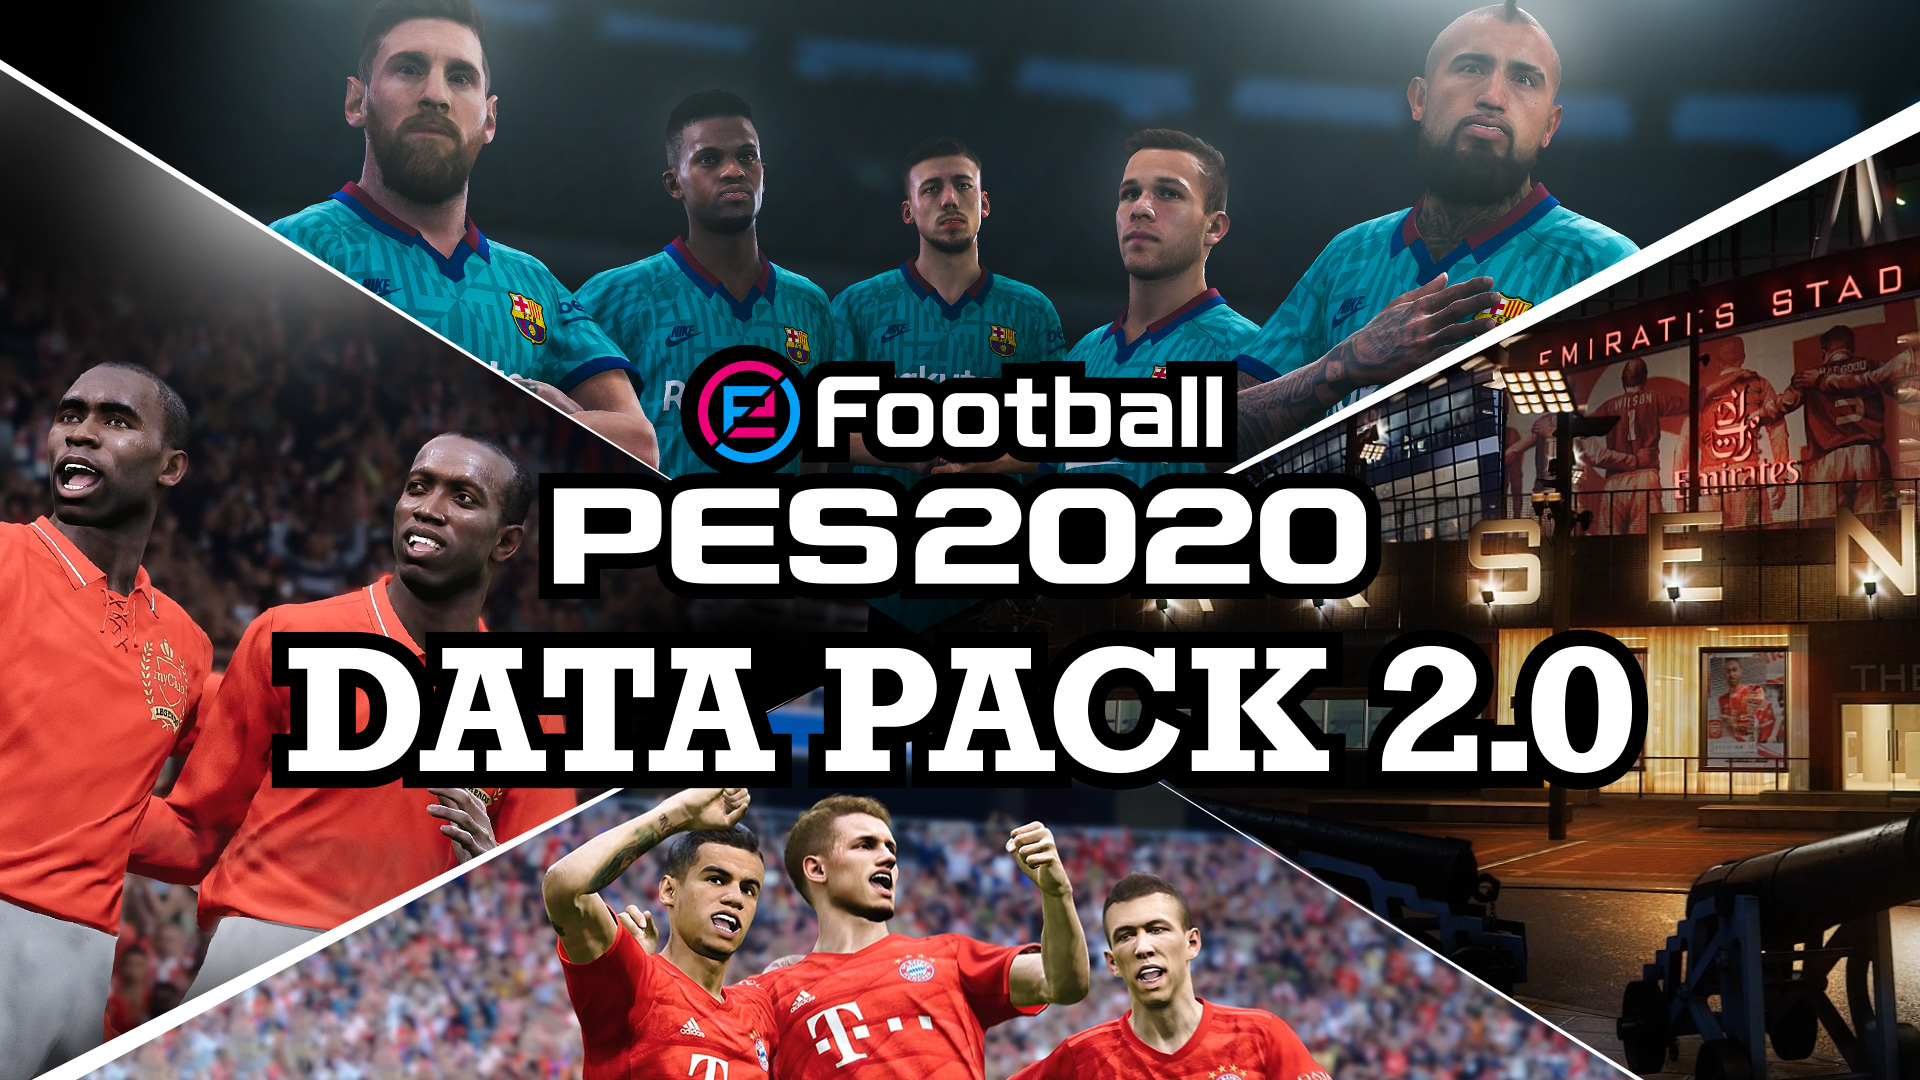 New content will be added to the game on October 24 to enhance your eFootball PES 2020 and Matchday experience!